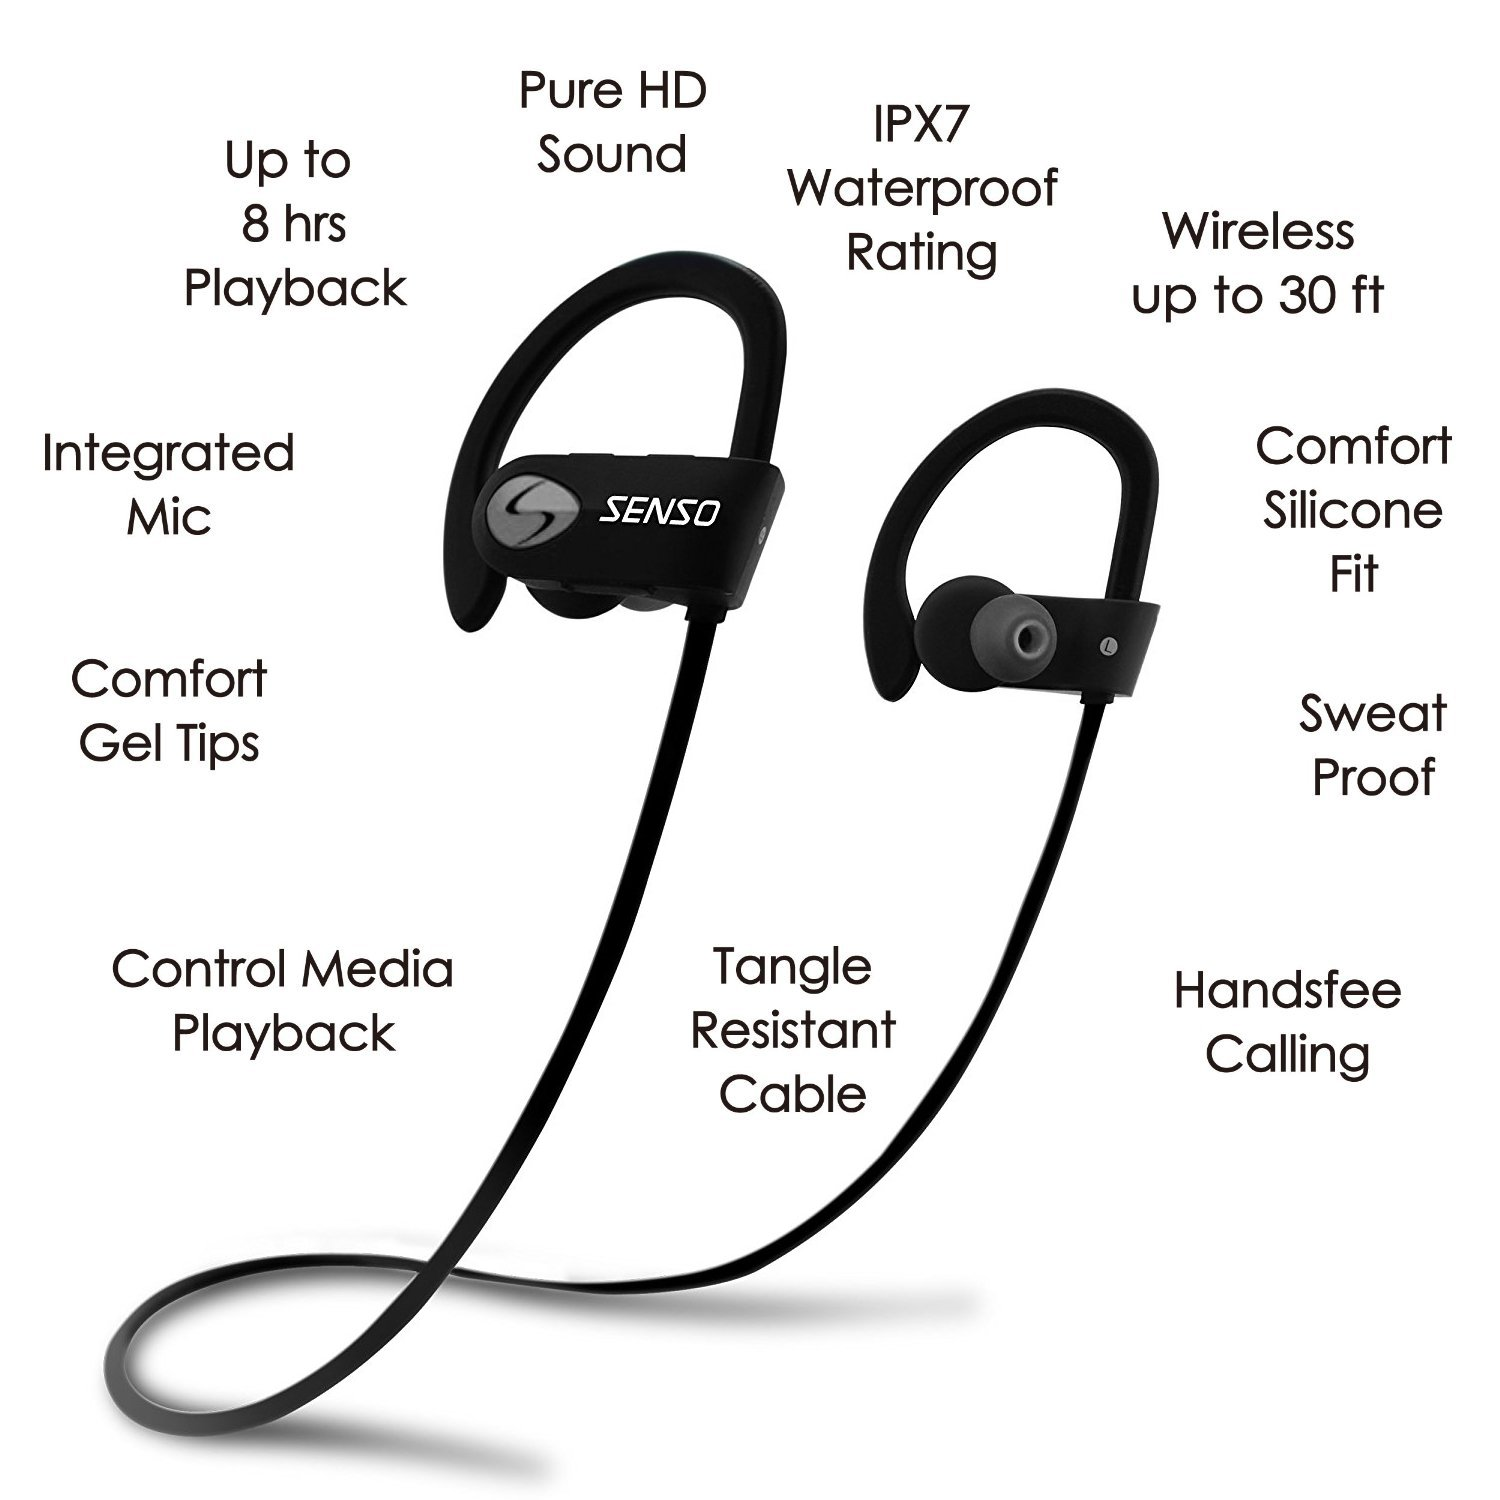 SENSO Bluetooth Headphones, Best Wireless Sports Earphones w/Mic IPX7 Waterproof HD Stereo Sweatproof Earbuds for Gym Running Workout 8 Hour Battery Noise Cancelling Headsets (Grey) by Senso (Image #4)